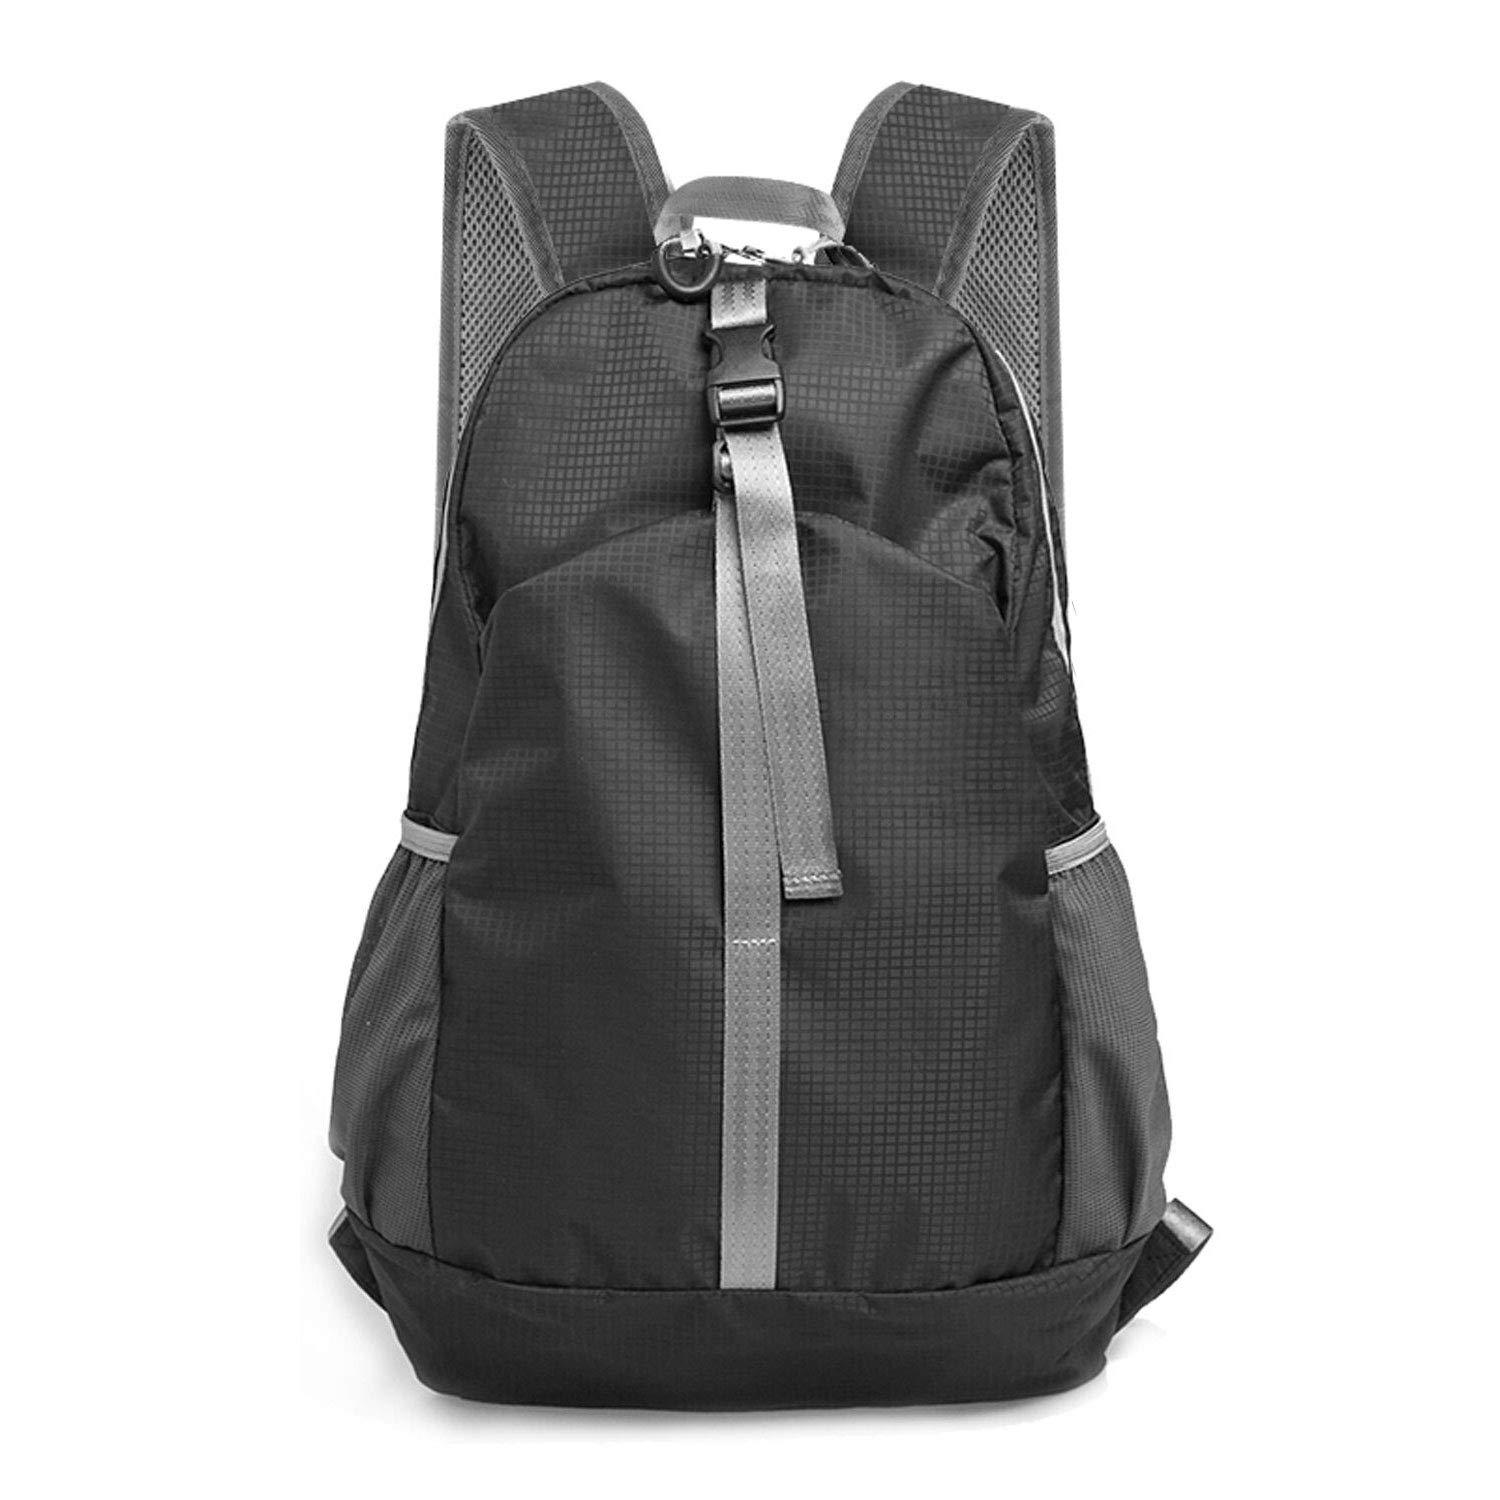 MoKo Packable Travel Backpack Hiking Daypack, 30L Lightweight Foldable Water Resistant Outdoor Daily Backpacks for Men Women Boys Girls for Camping, Climbing, Vacation, Touring, Beach, Cycling